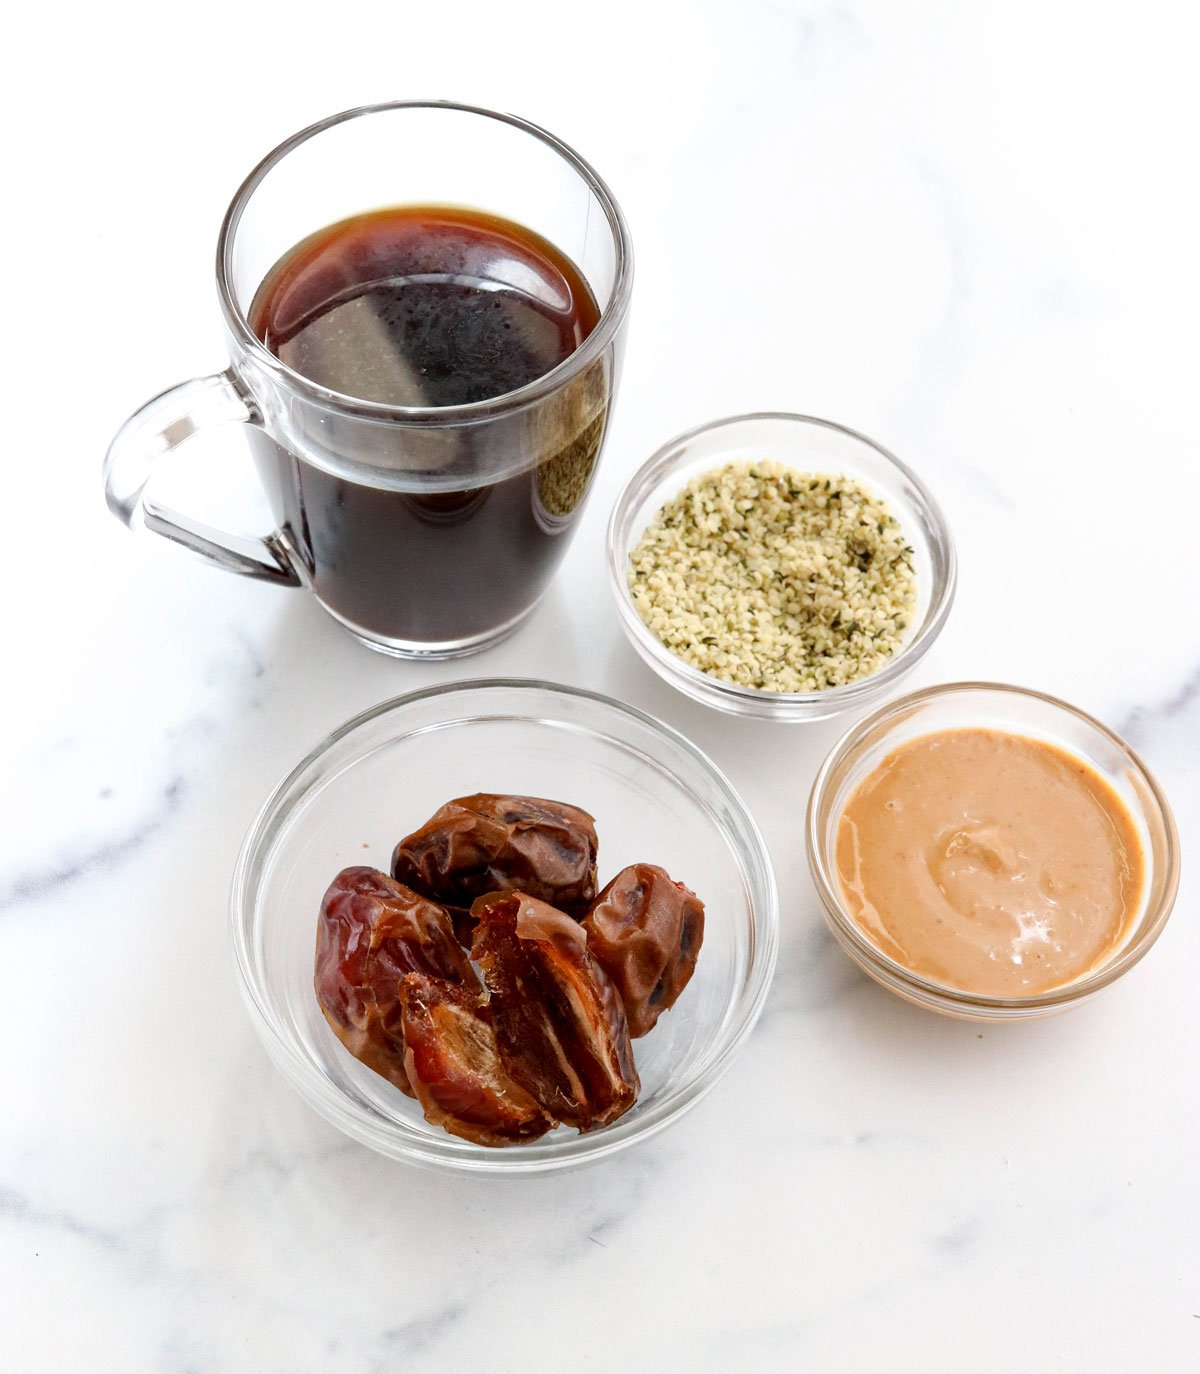 coffee smoothie ingredients on marble surface